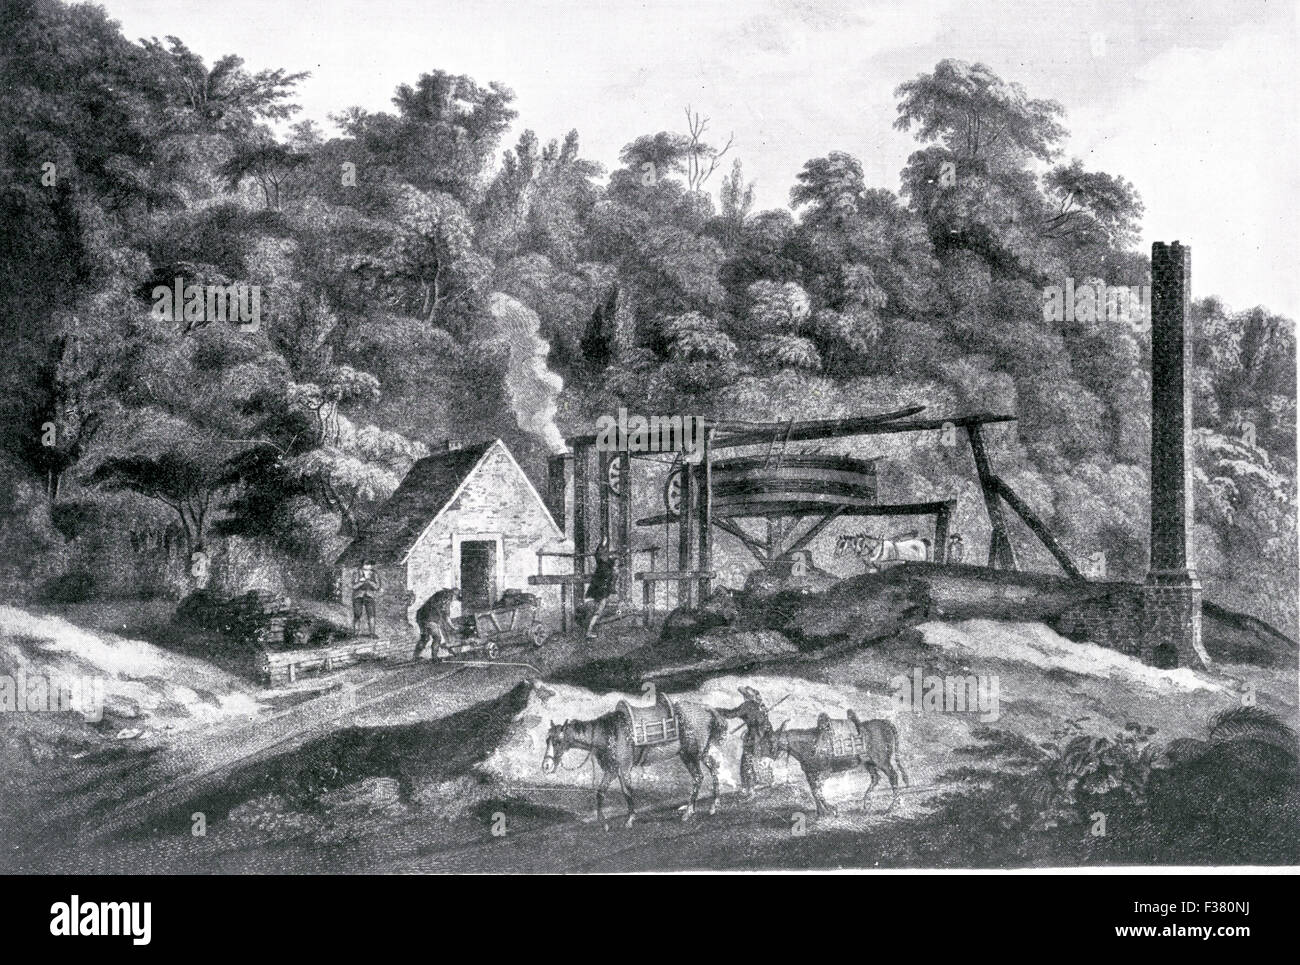 COAL MINING at Broseley, Shropshire, about 1760. Coal was raised by a two-horse powered wheel with a fire engine - Stock Image